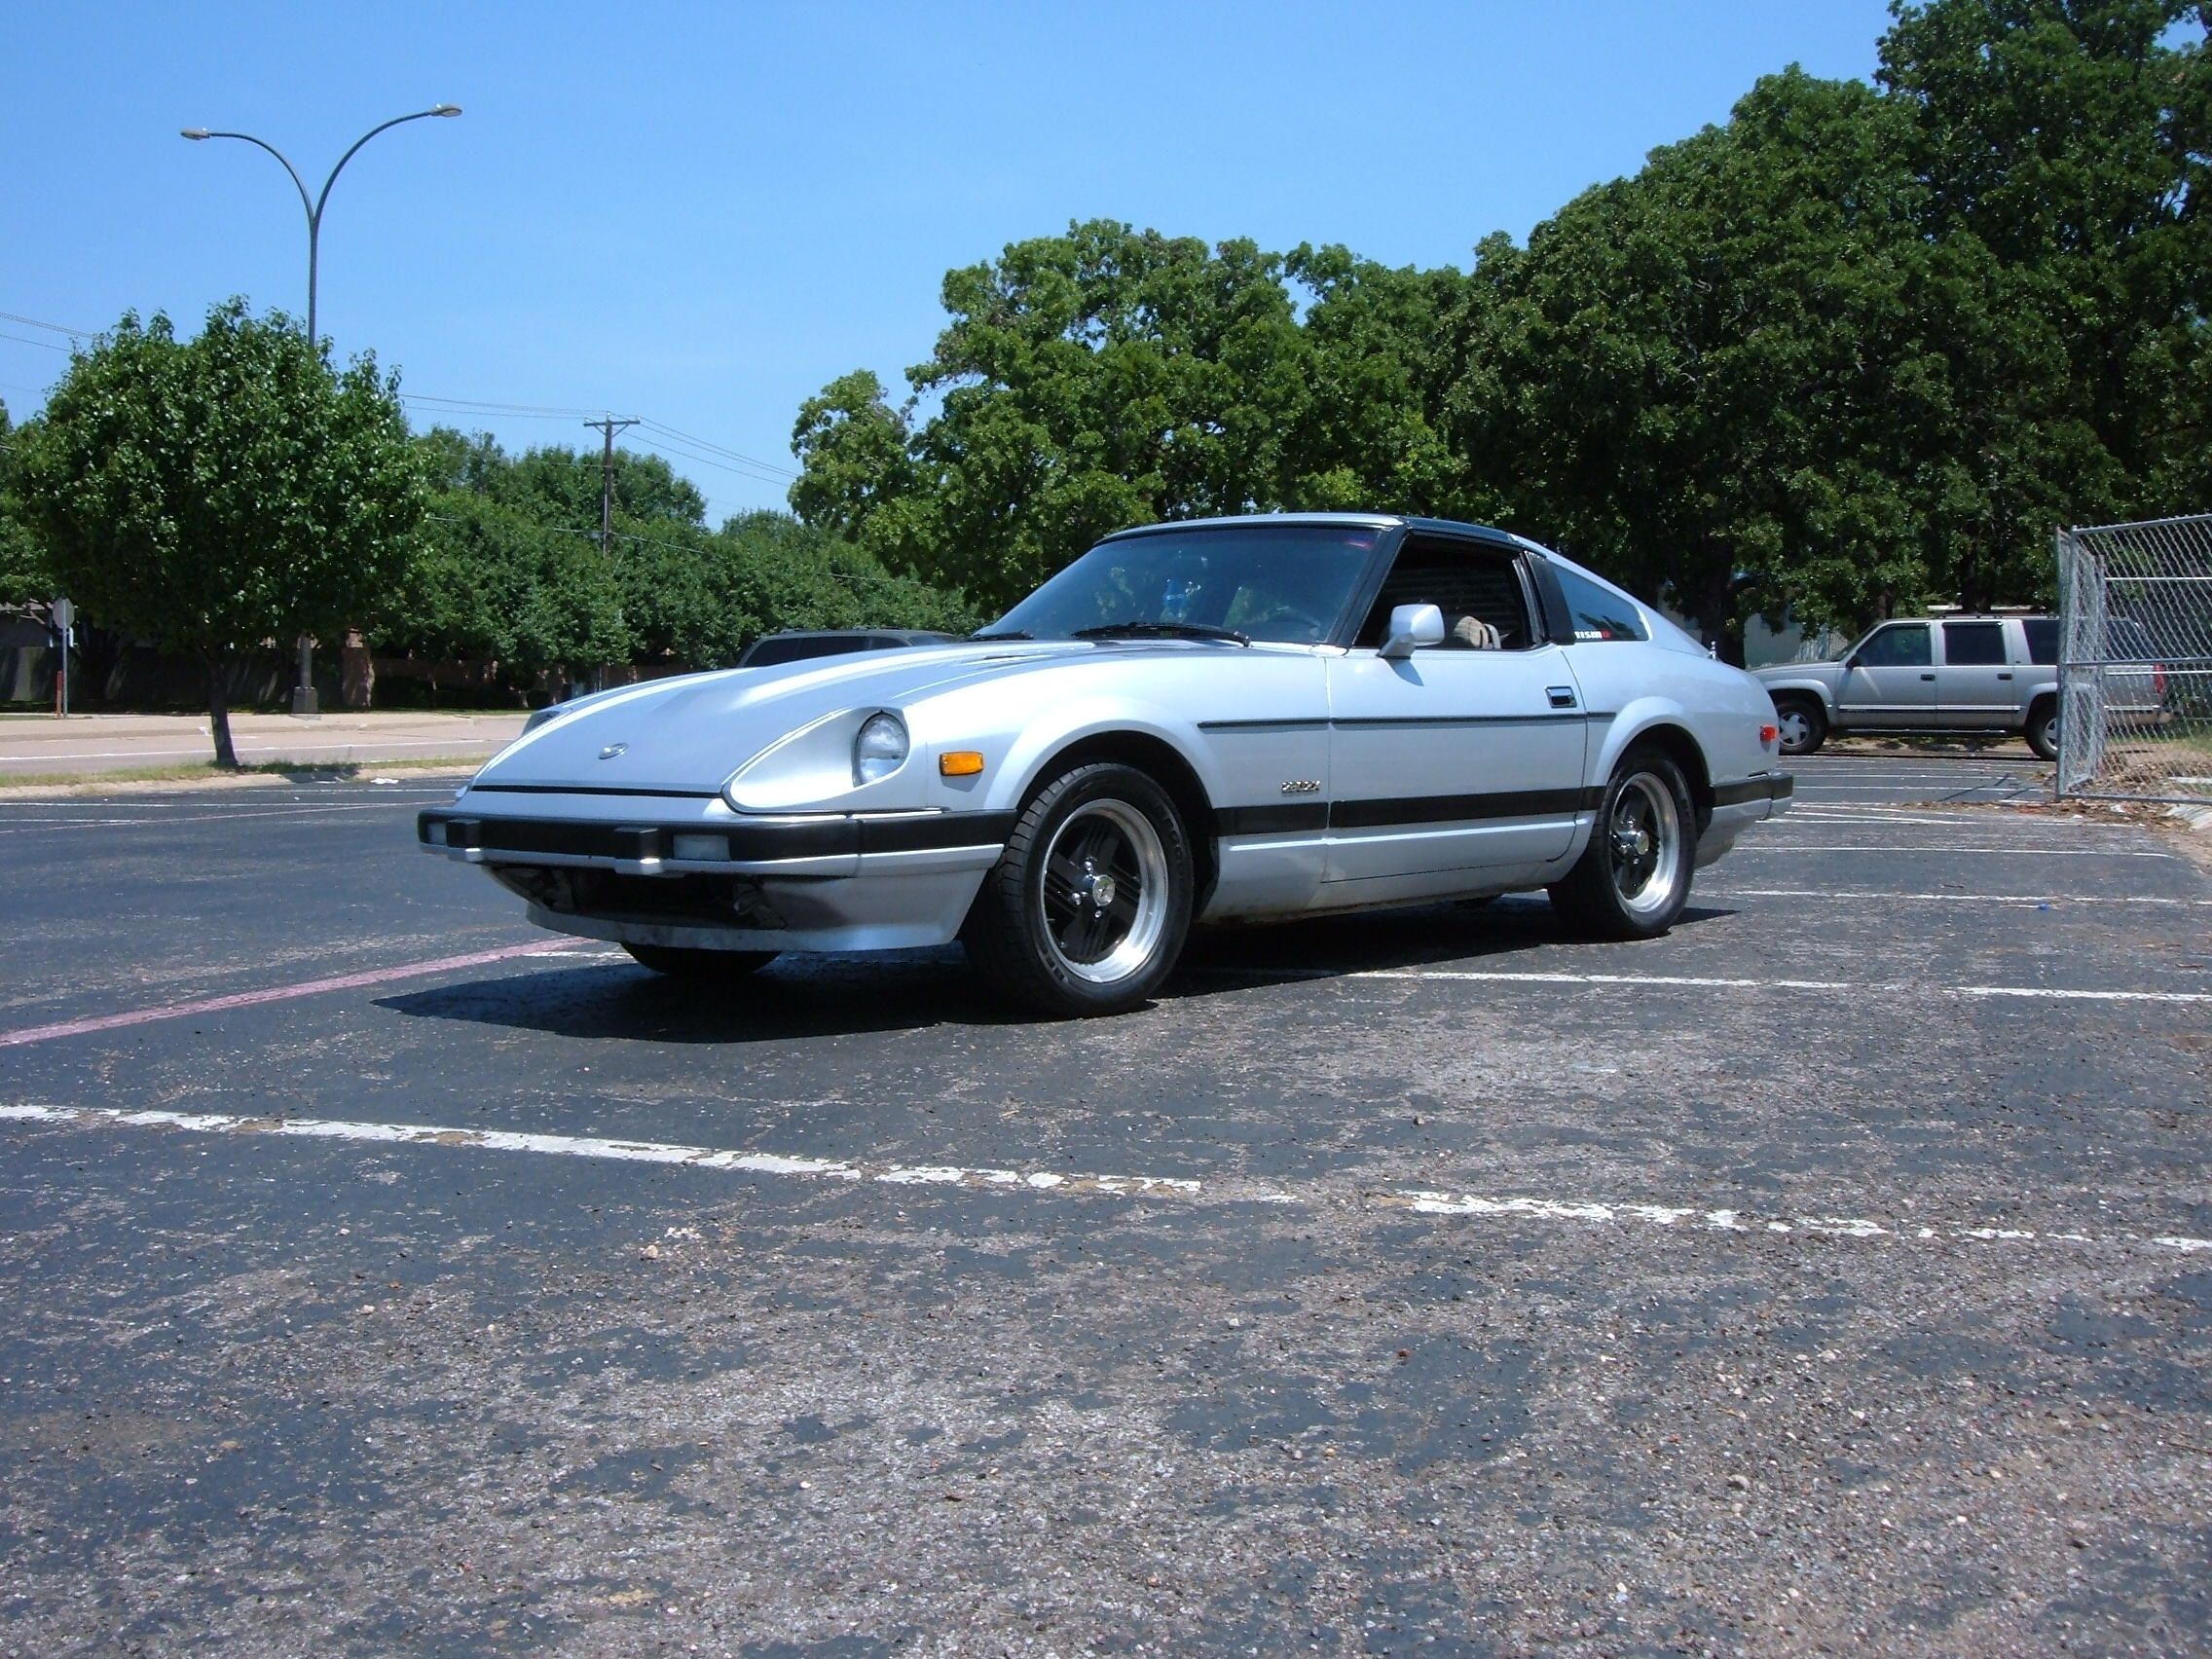 83turbo280zx 1983 datsun 280zx specs photos modification info at